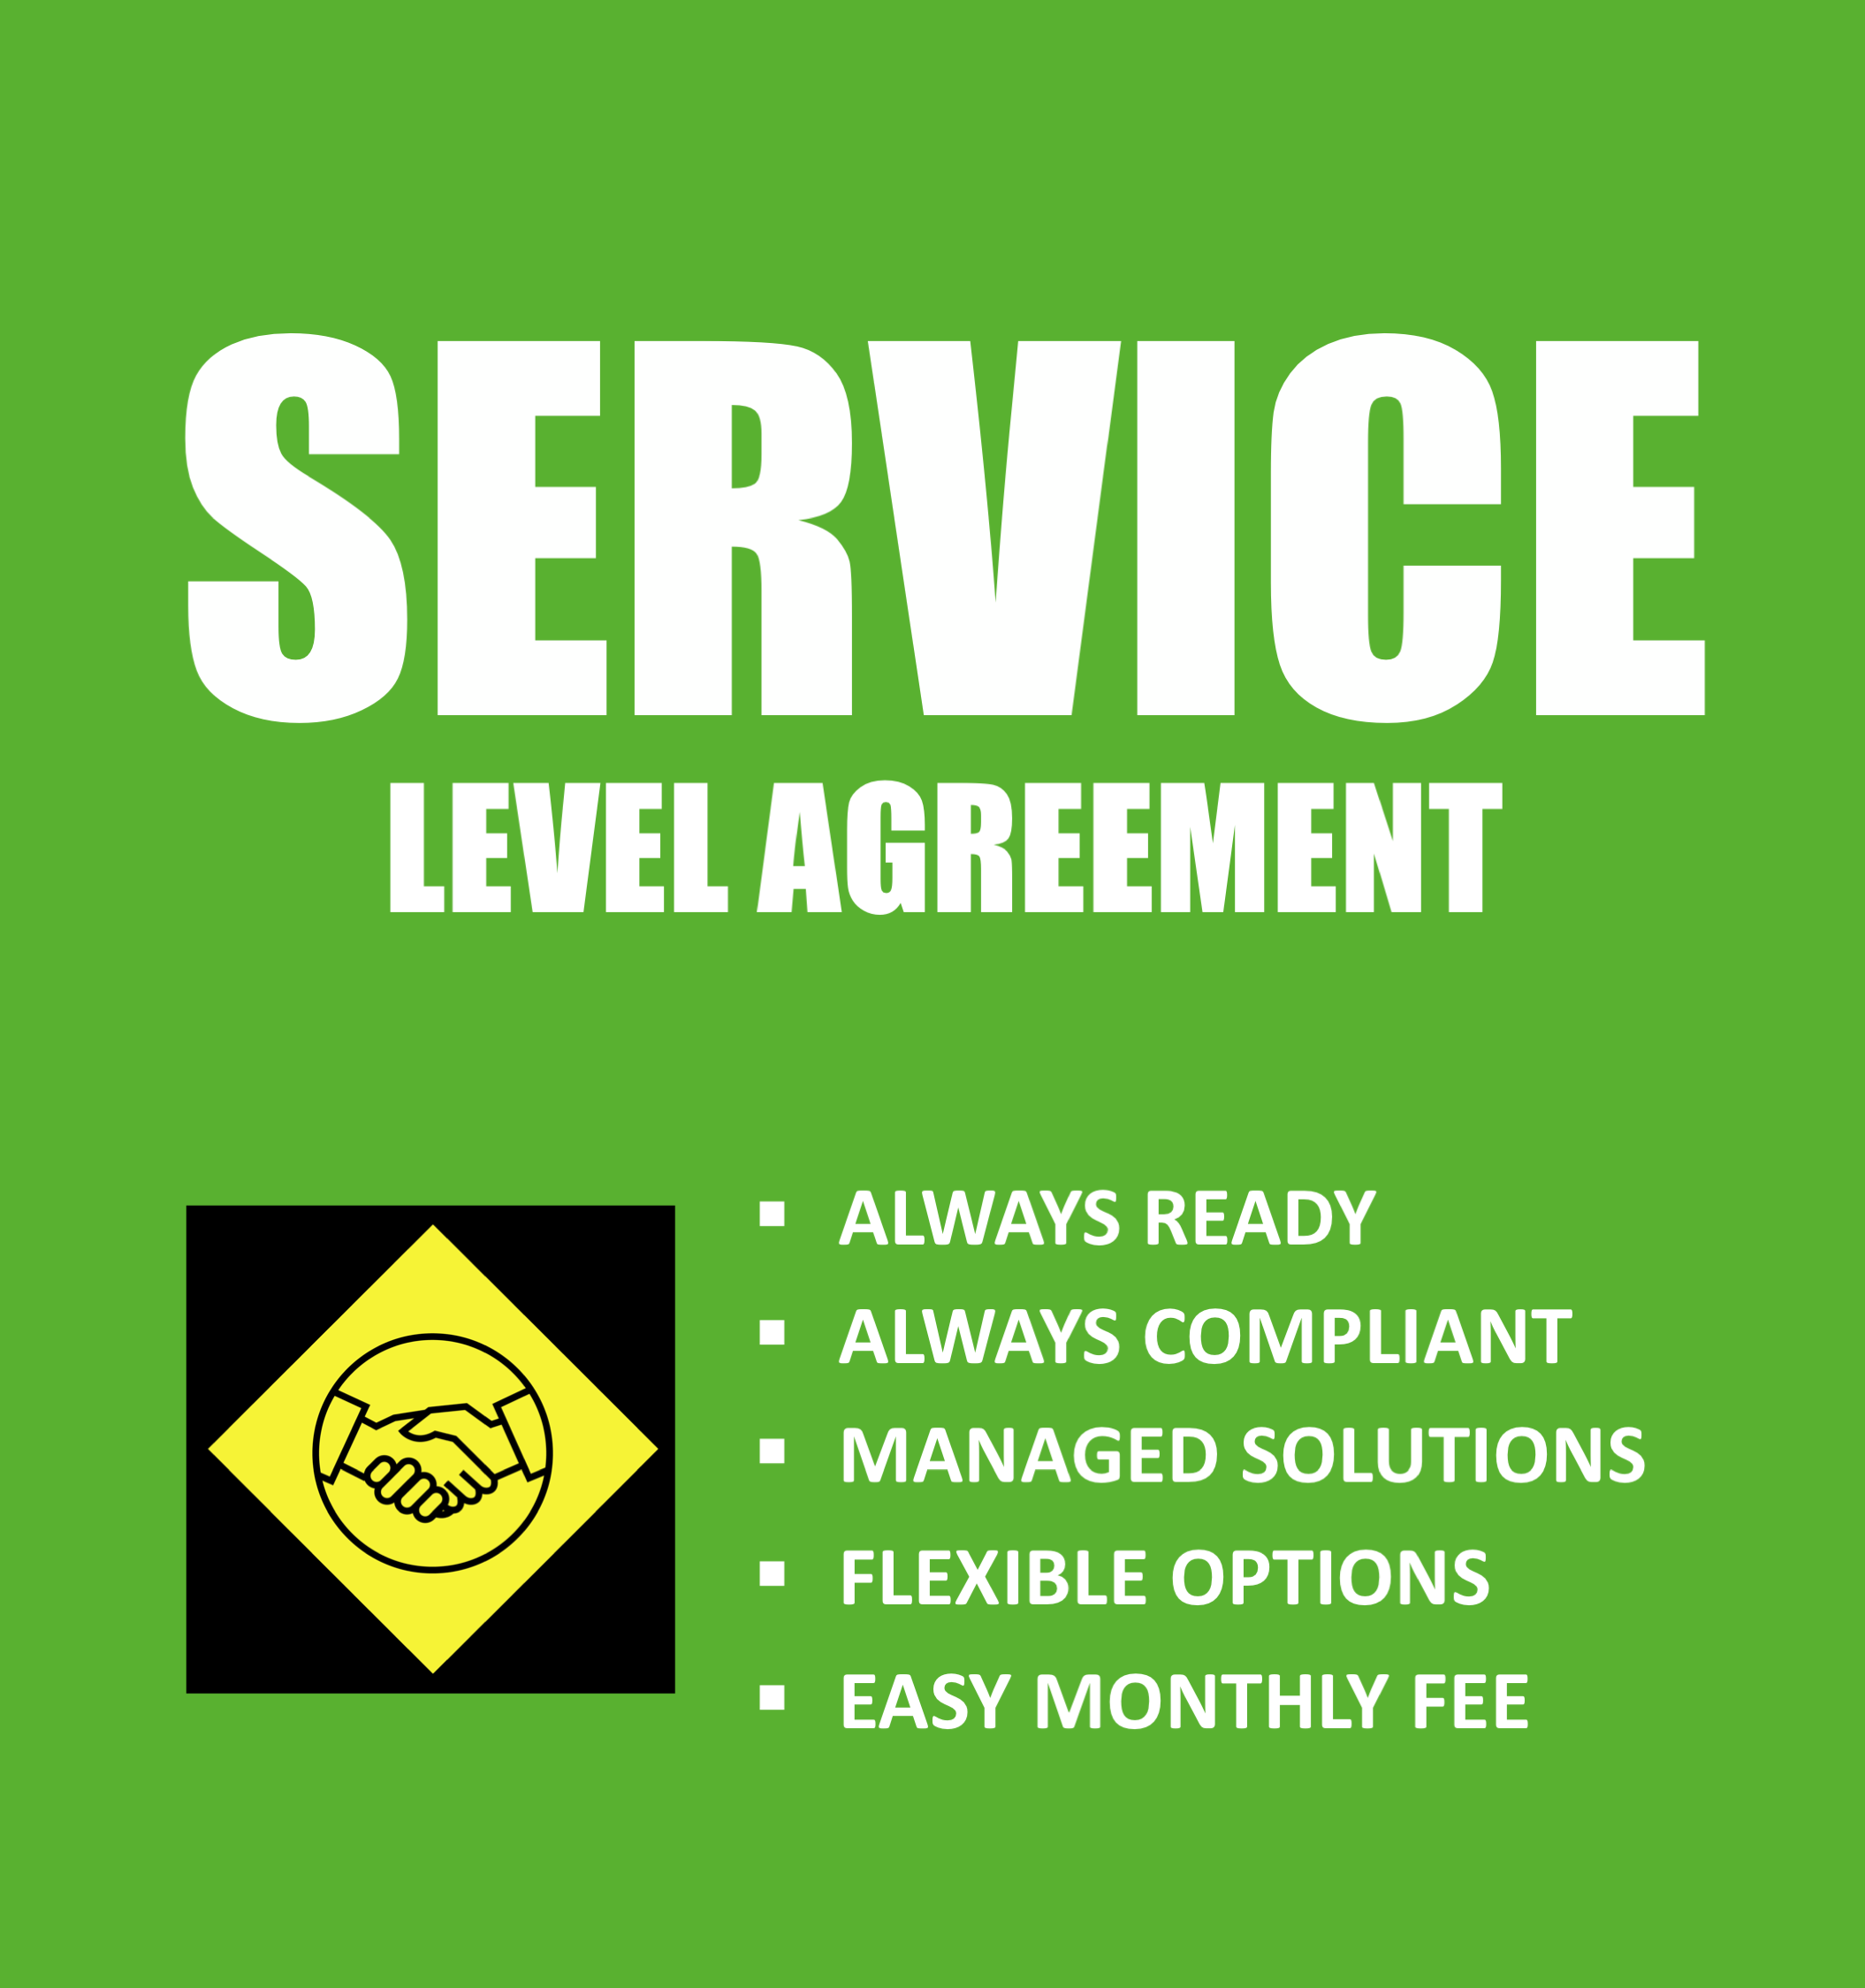 panel-service-level-agreement.png